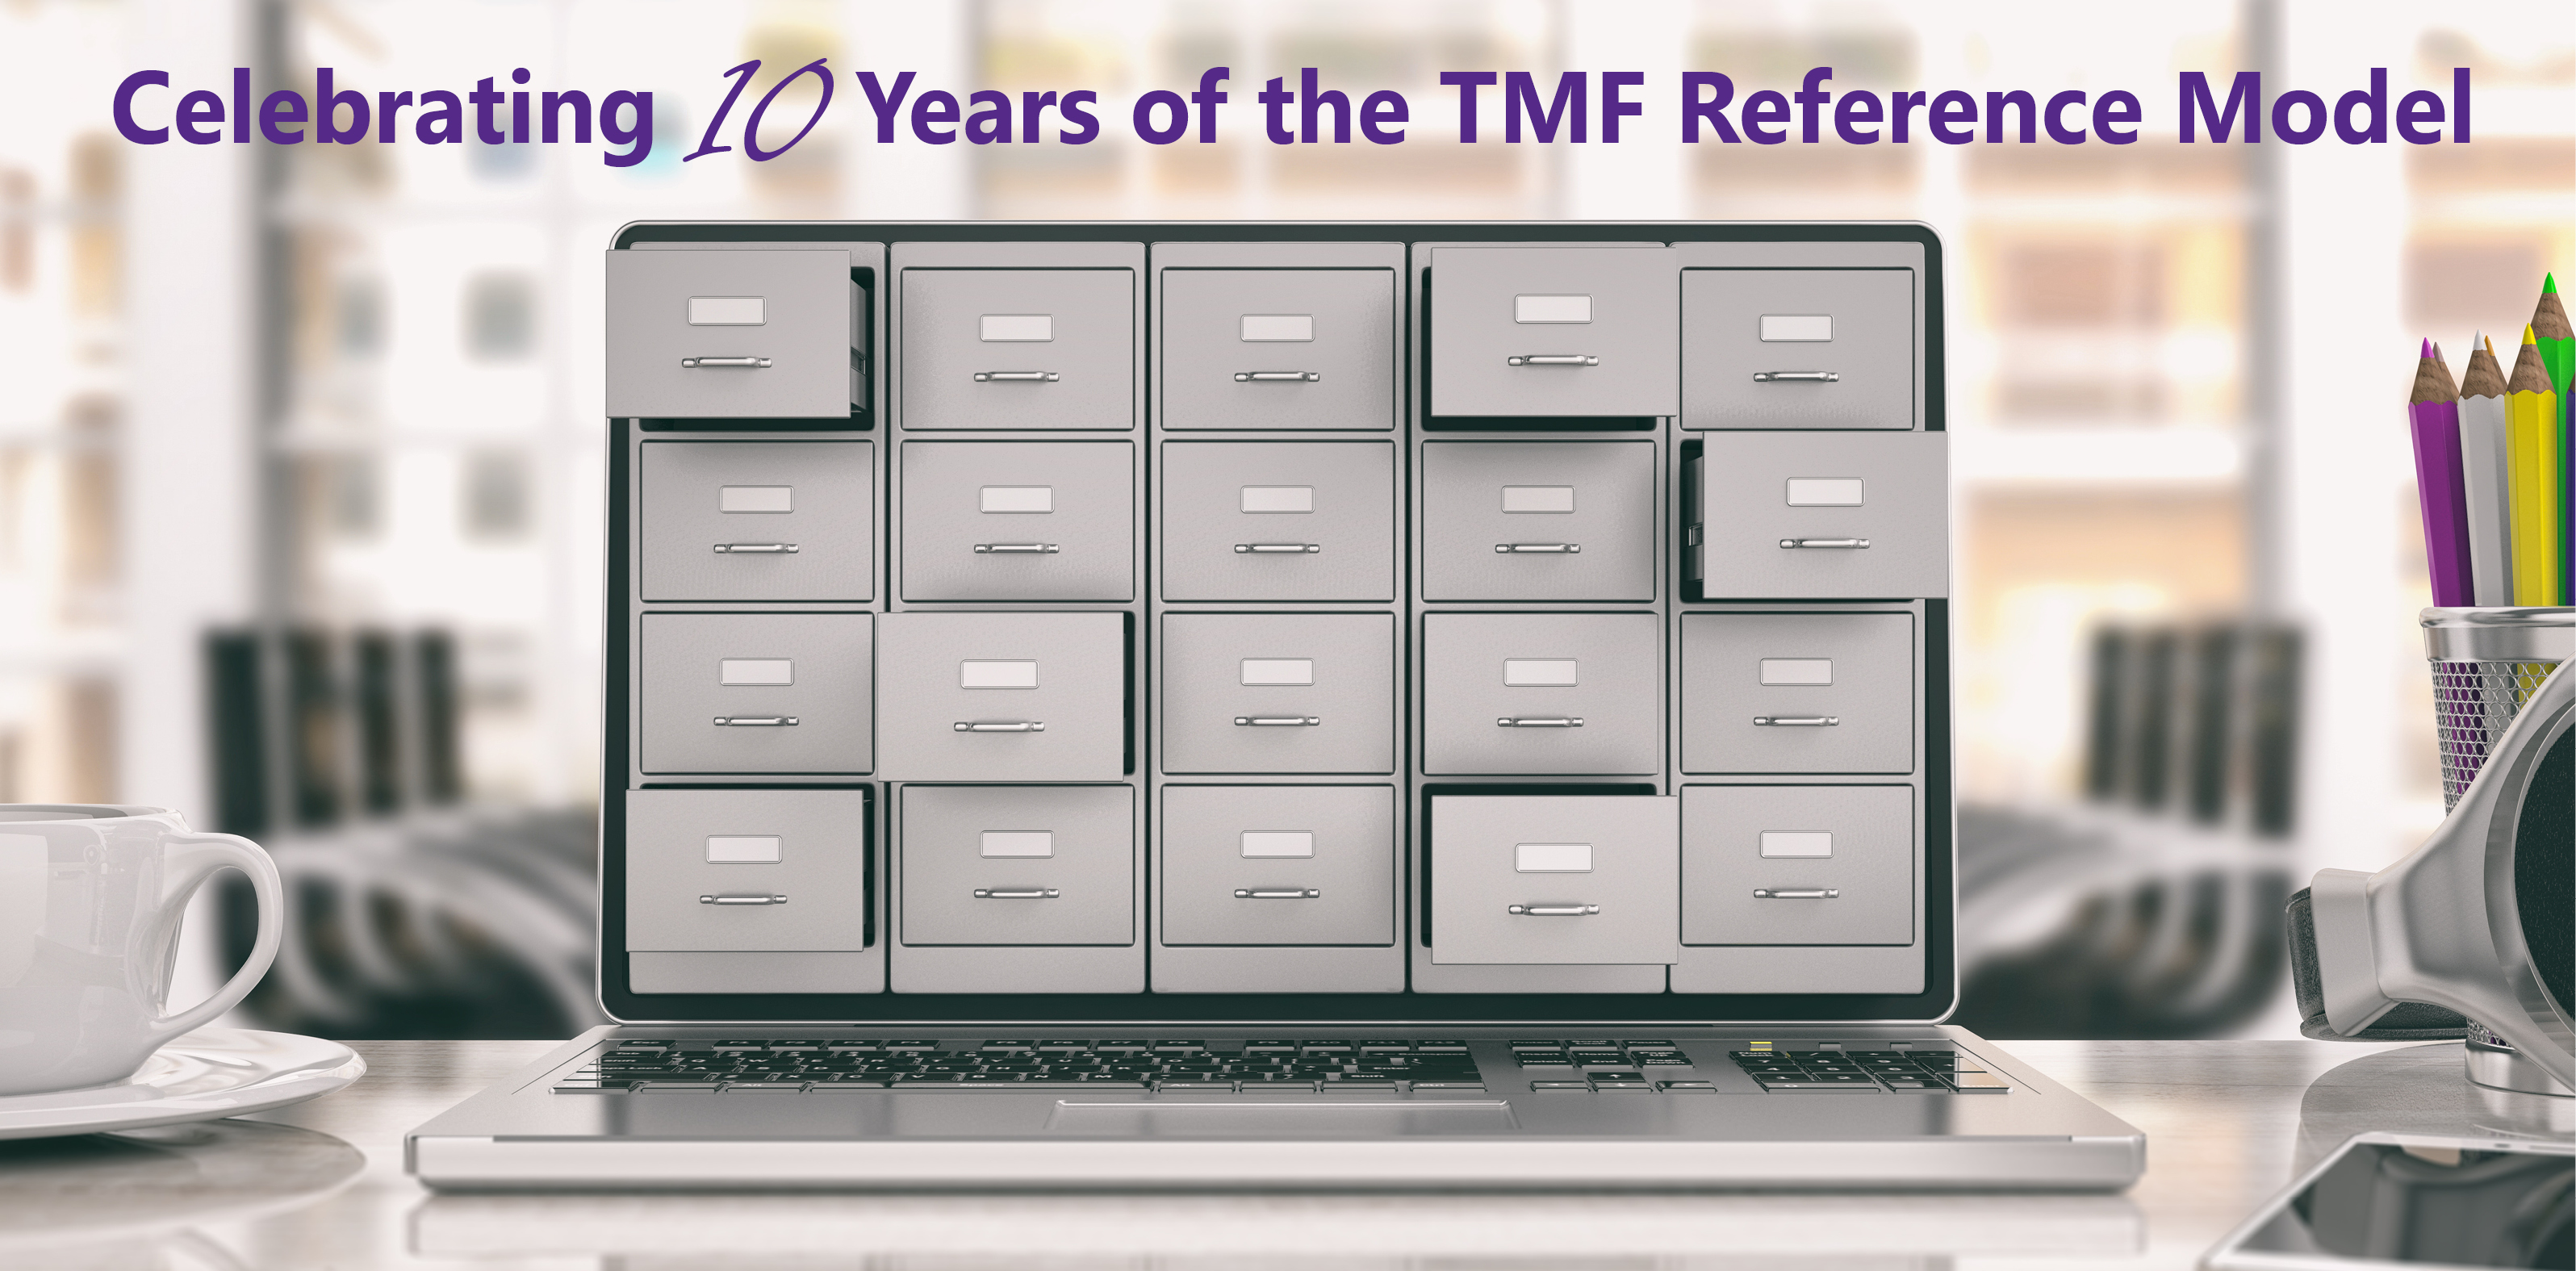 TMF Reference Model